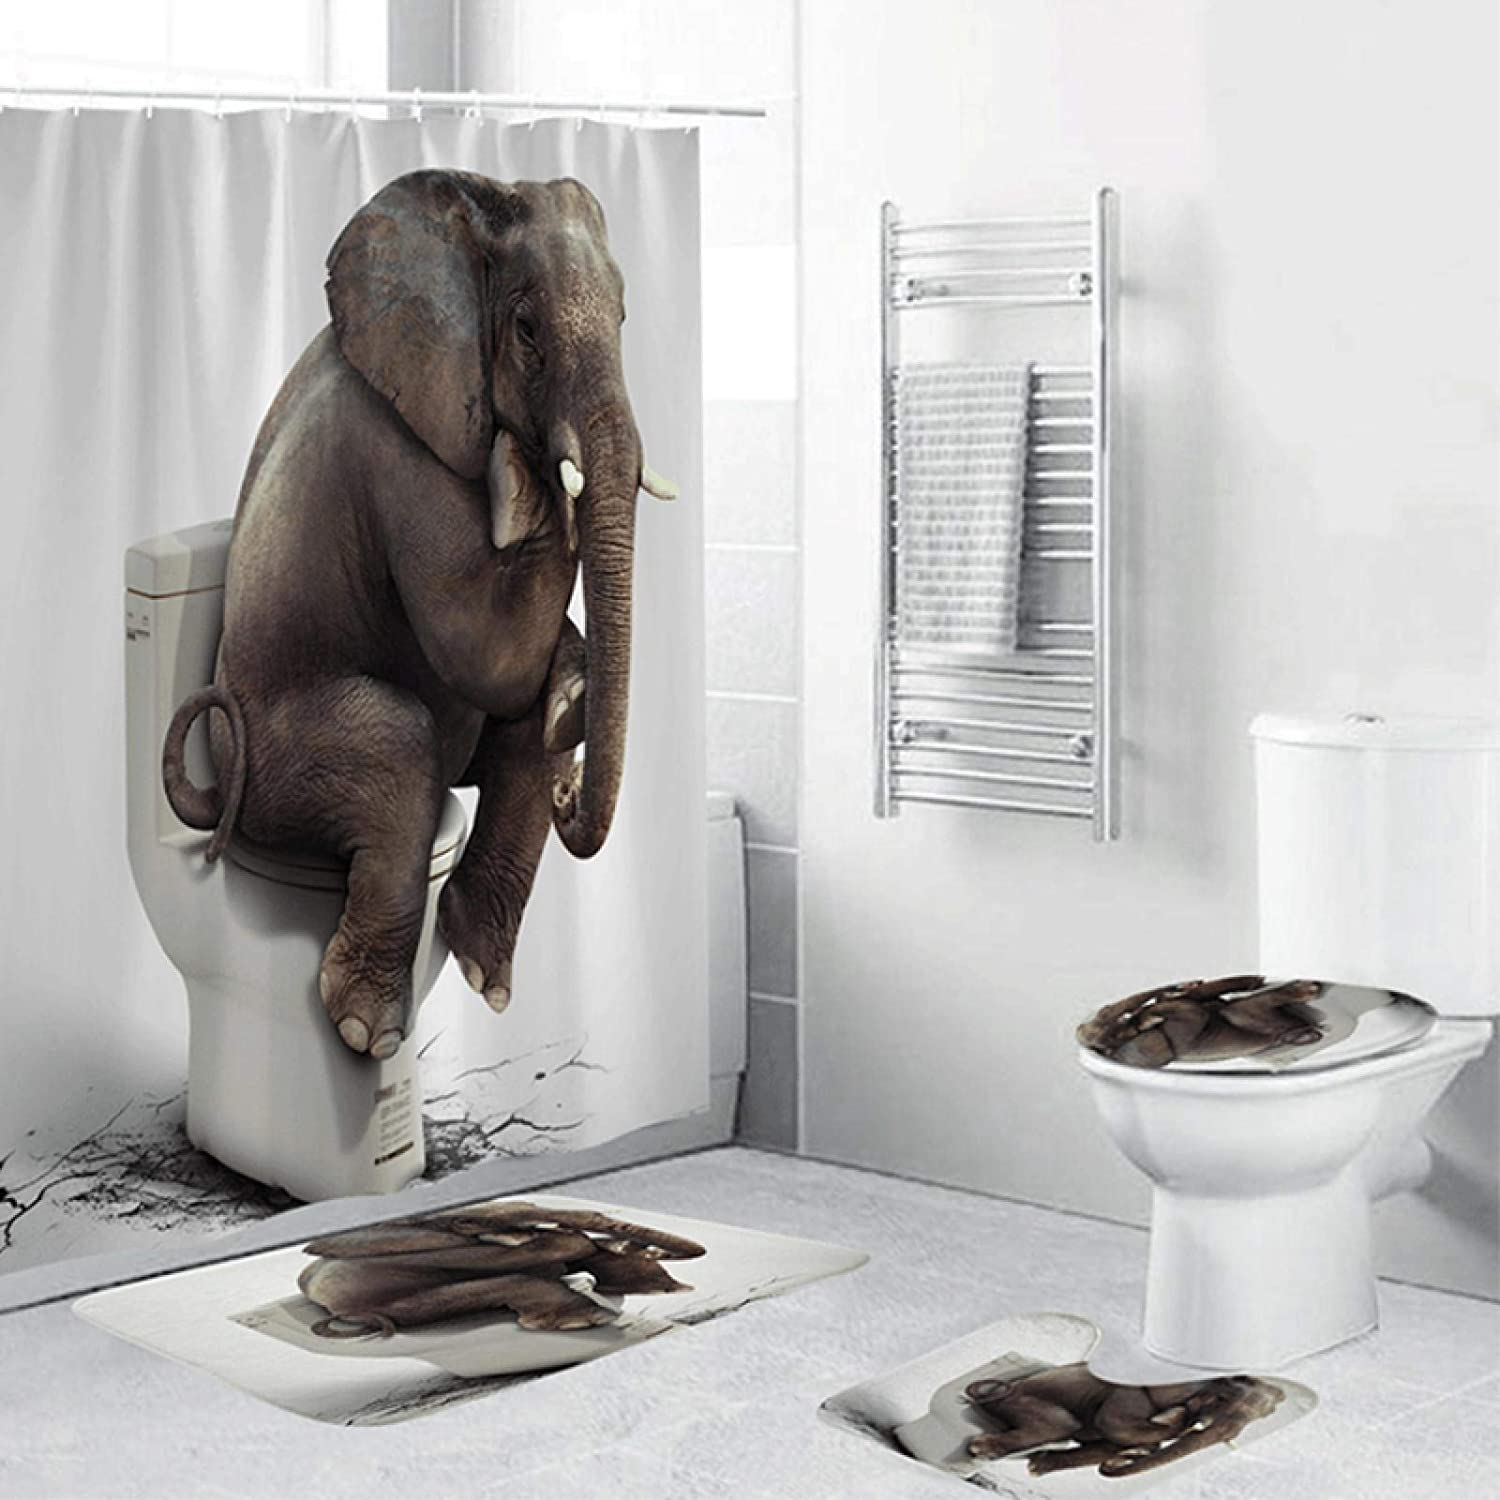 ZHEXI Elephant 3D Shower Curtain Set Carpet Ranking TOP12 Save money with Bathroom Mat To